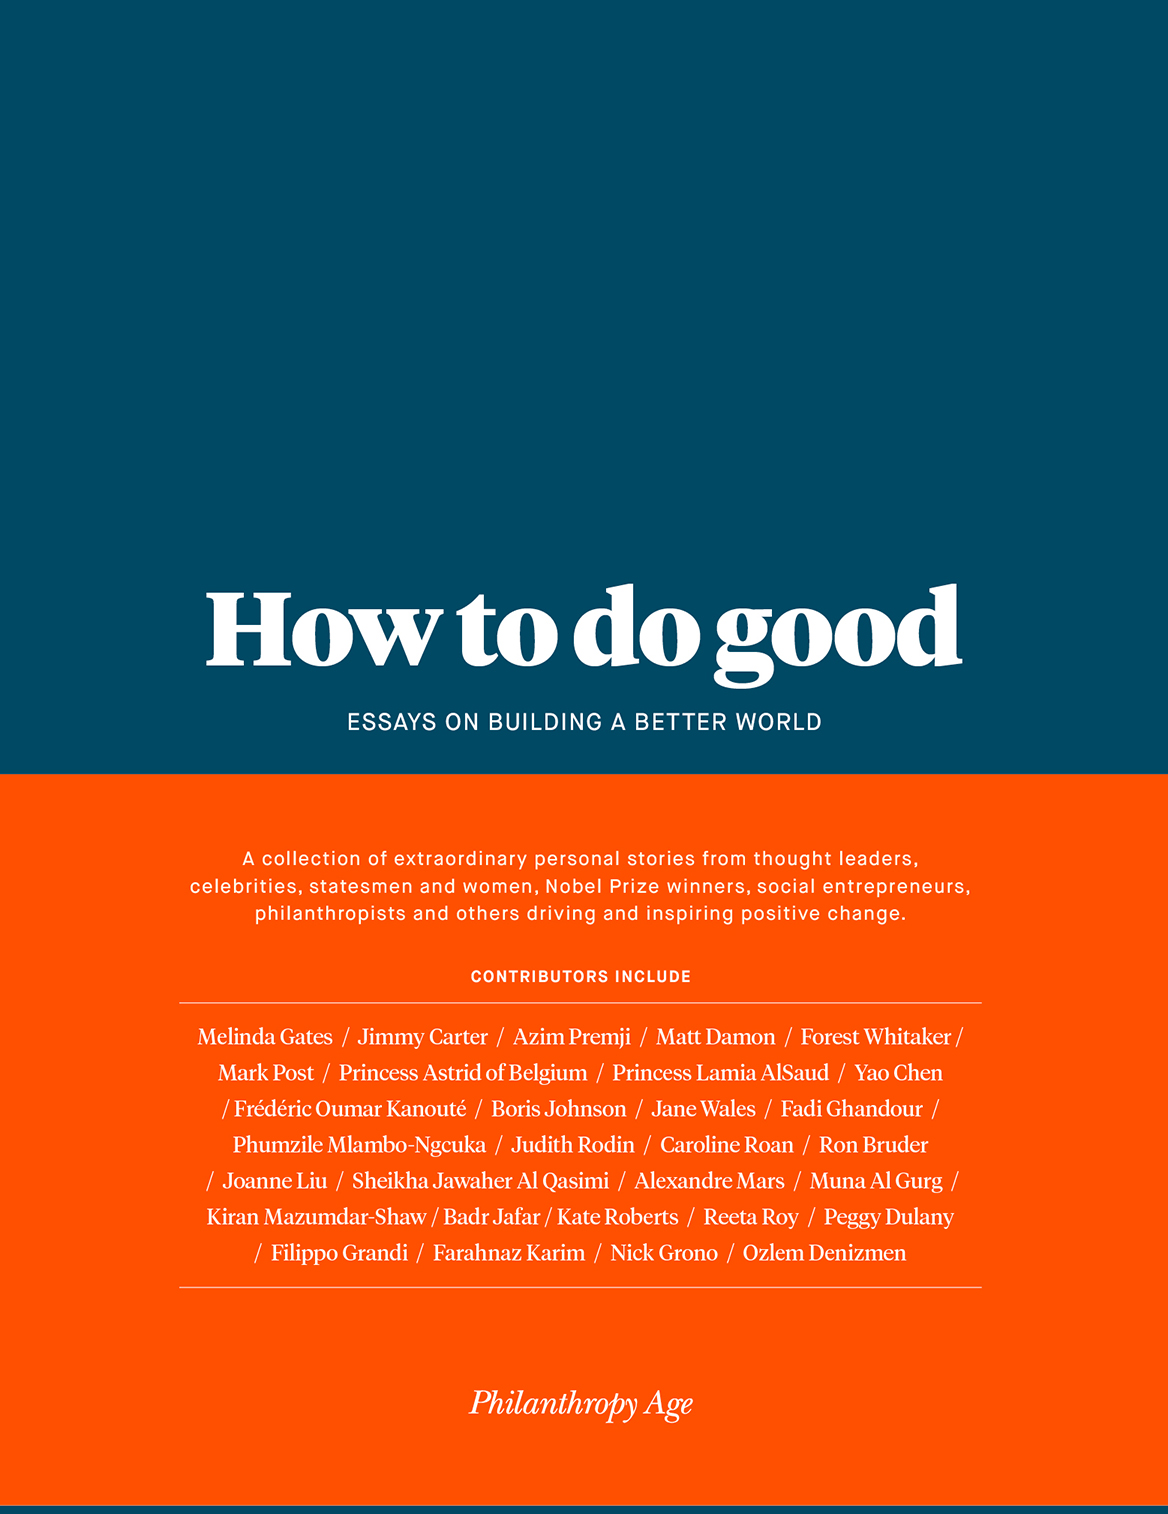 How to do good